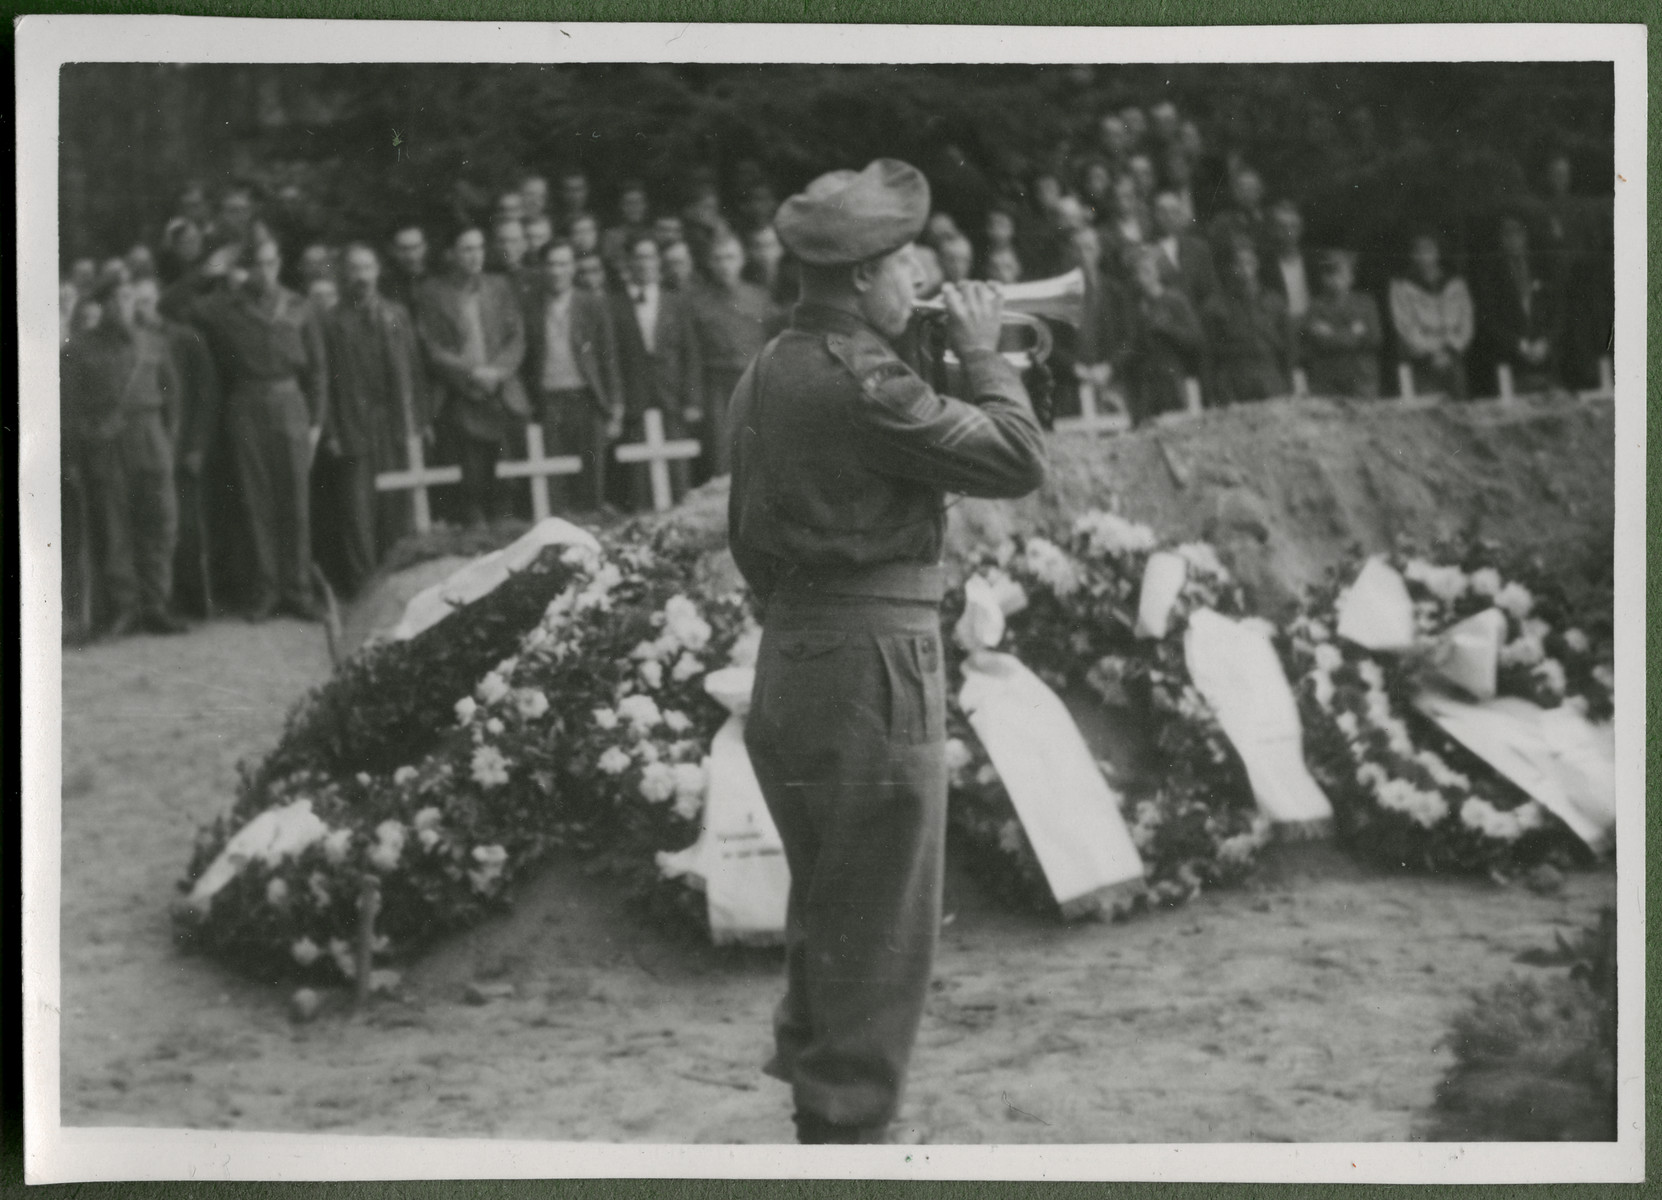 A bugler plays taps at a memorial service for the 243 slave laborers who were shot by their guards on the railway lines at Lueneburg on the way to the Belsen Camp.